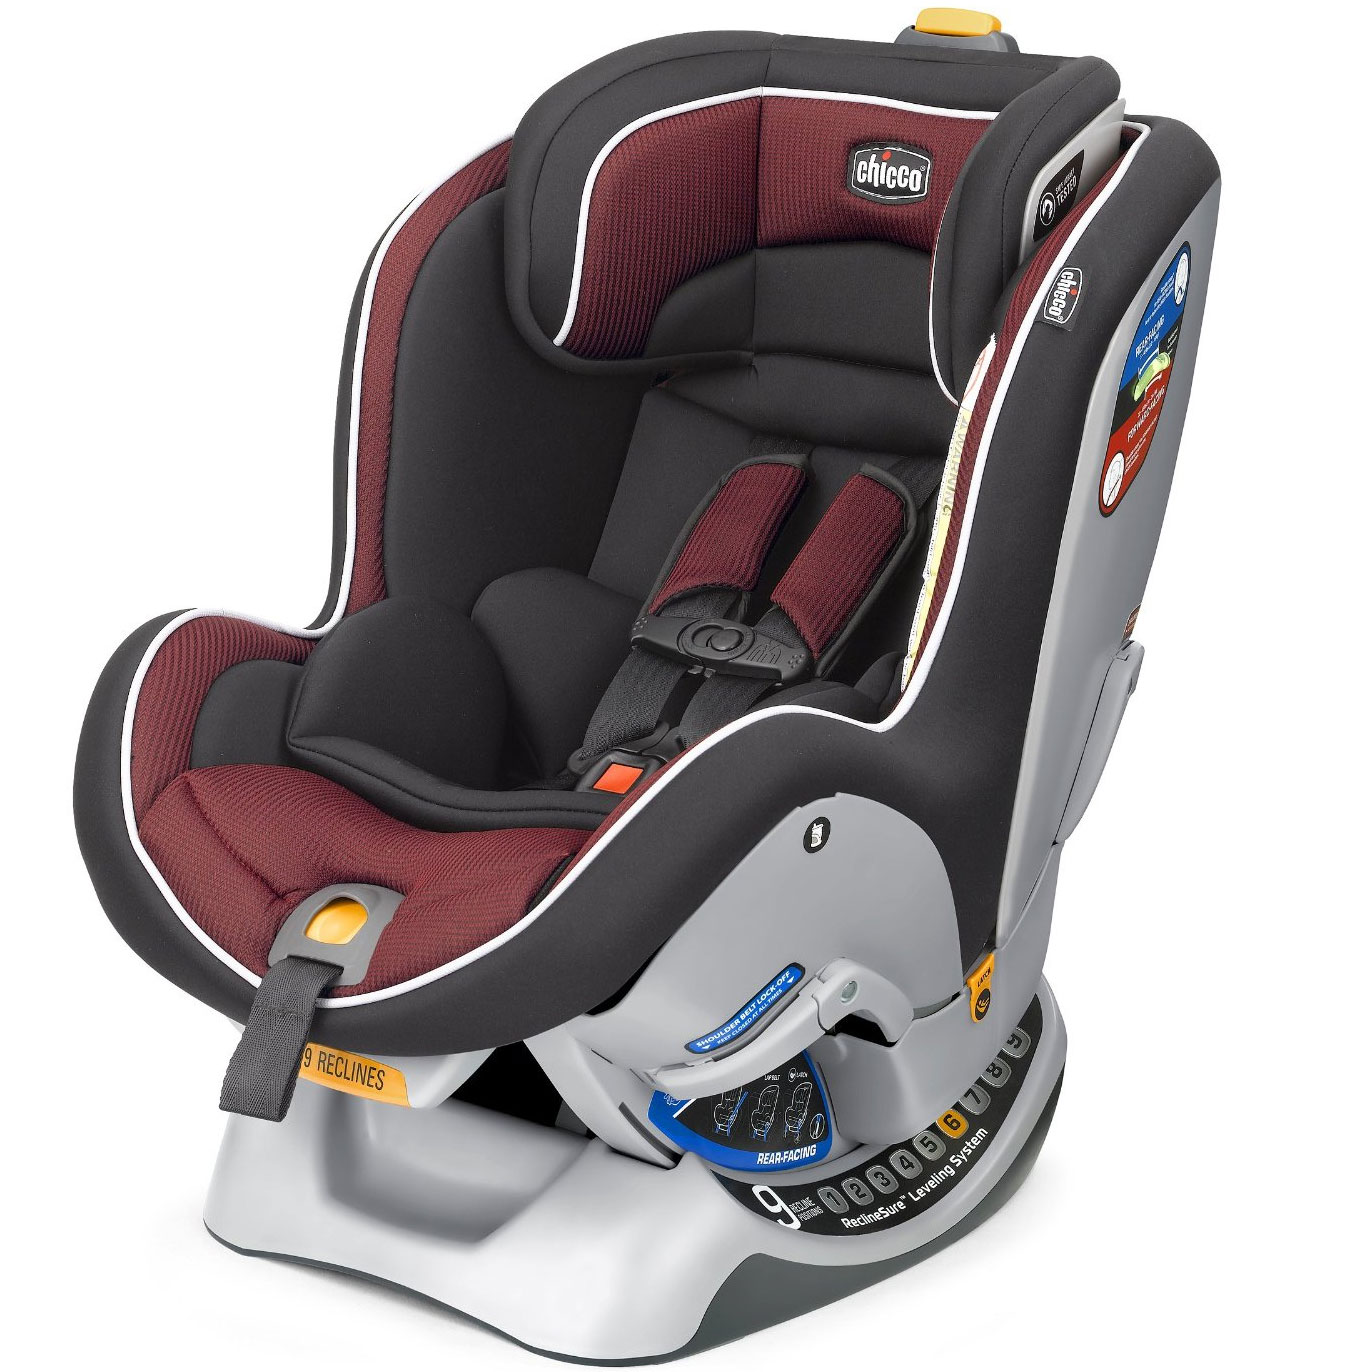 chicco 2014 nextfit convertible car seat studio. Black Bedroom Furniture Sets. Home Design Ideas